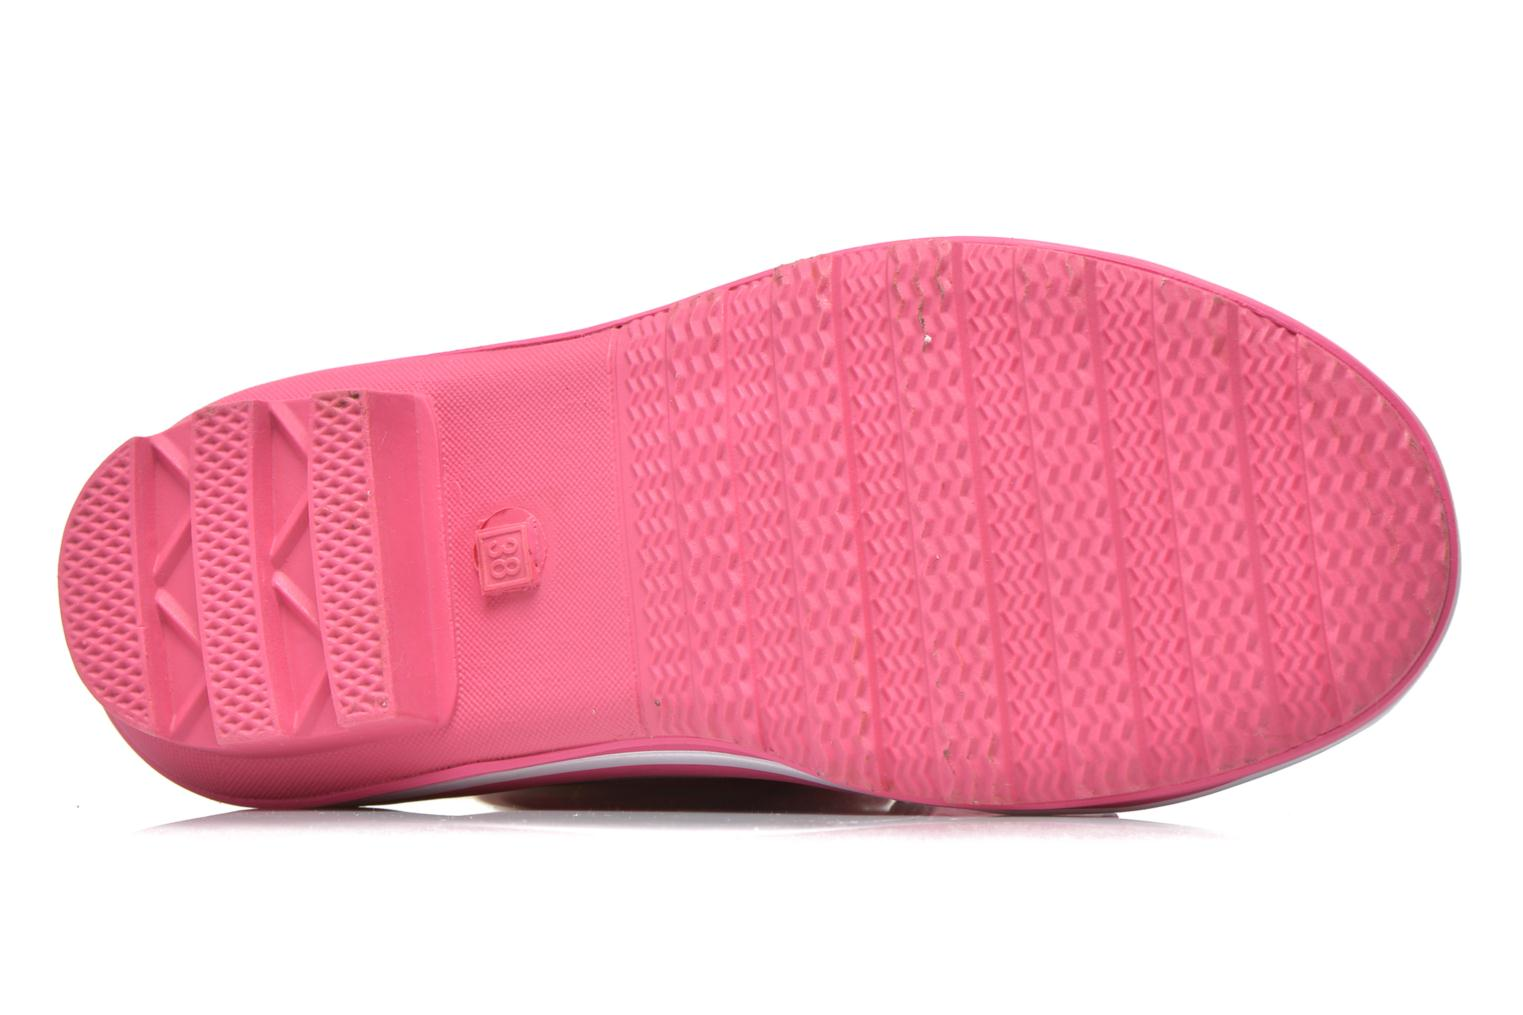 SHOES_FAELA 3167 FANDANGO PINK